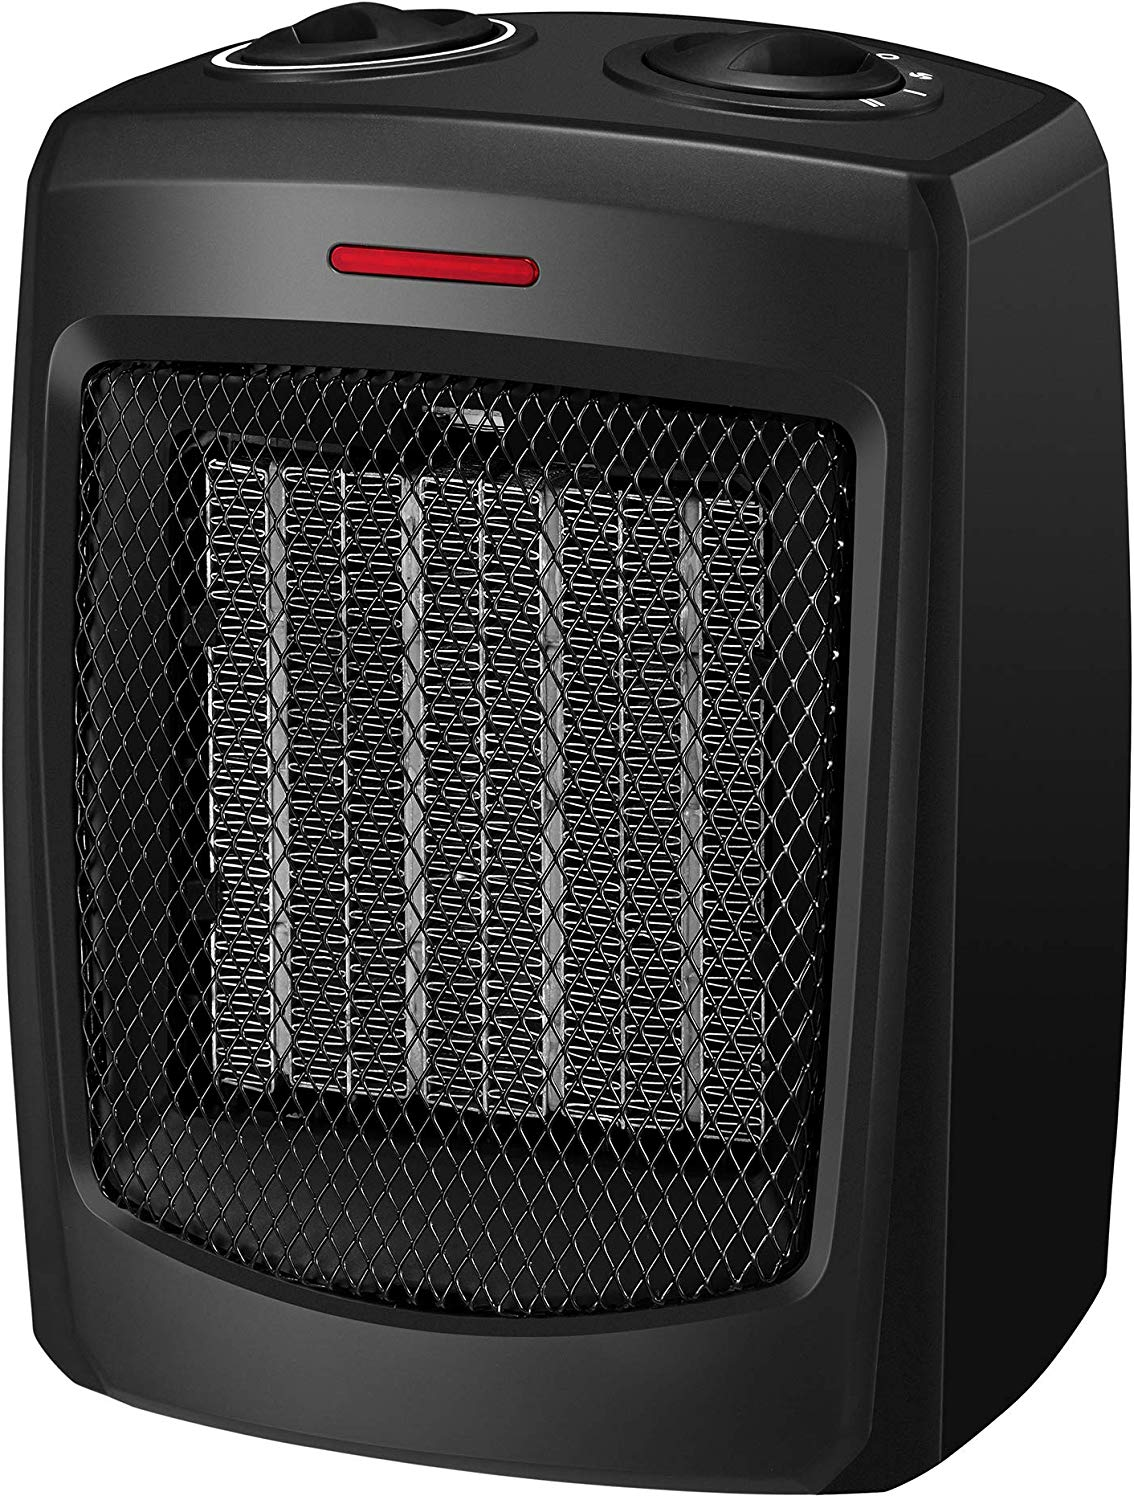 andily Space Heater Electric